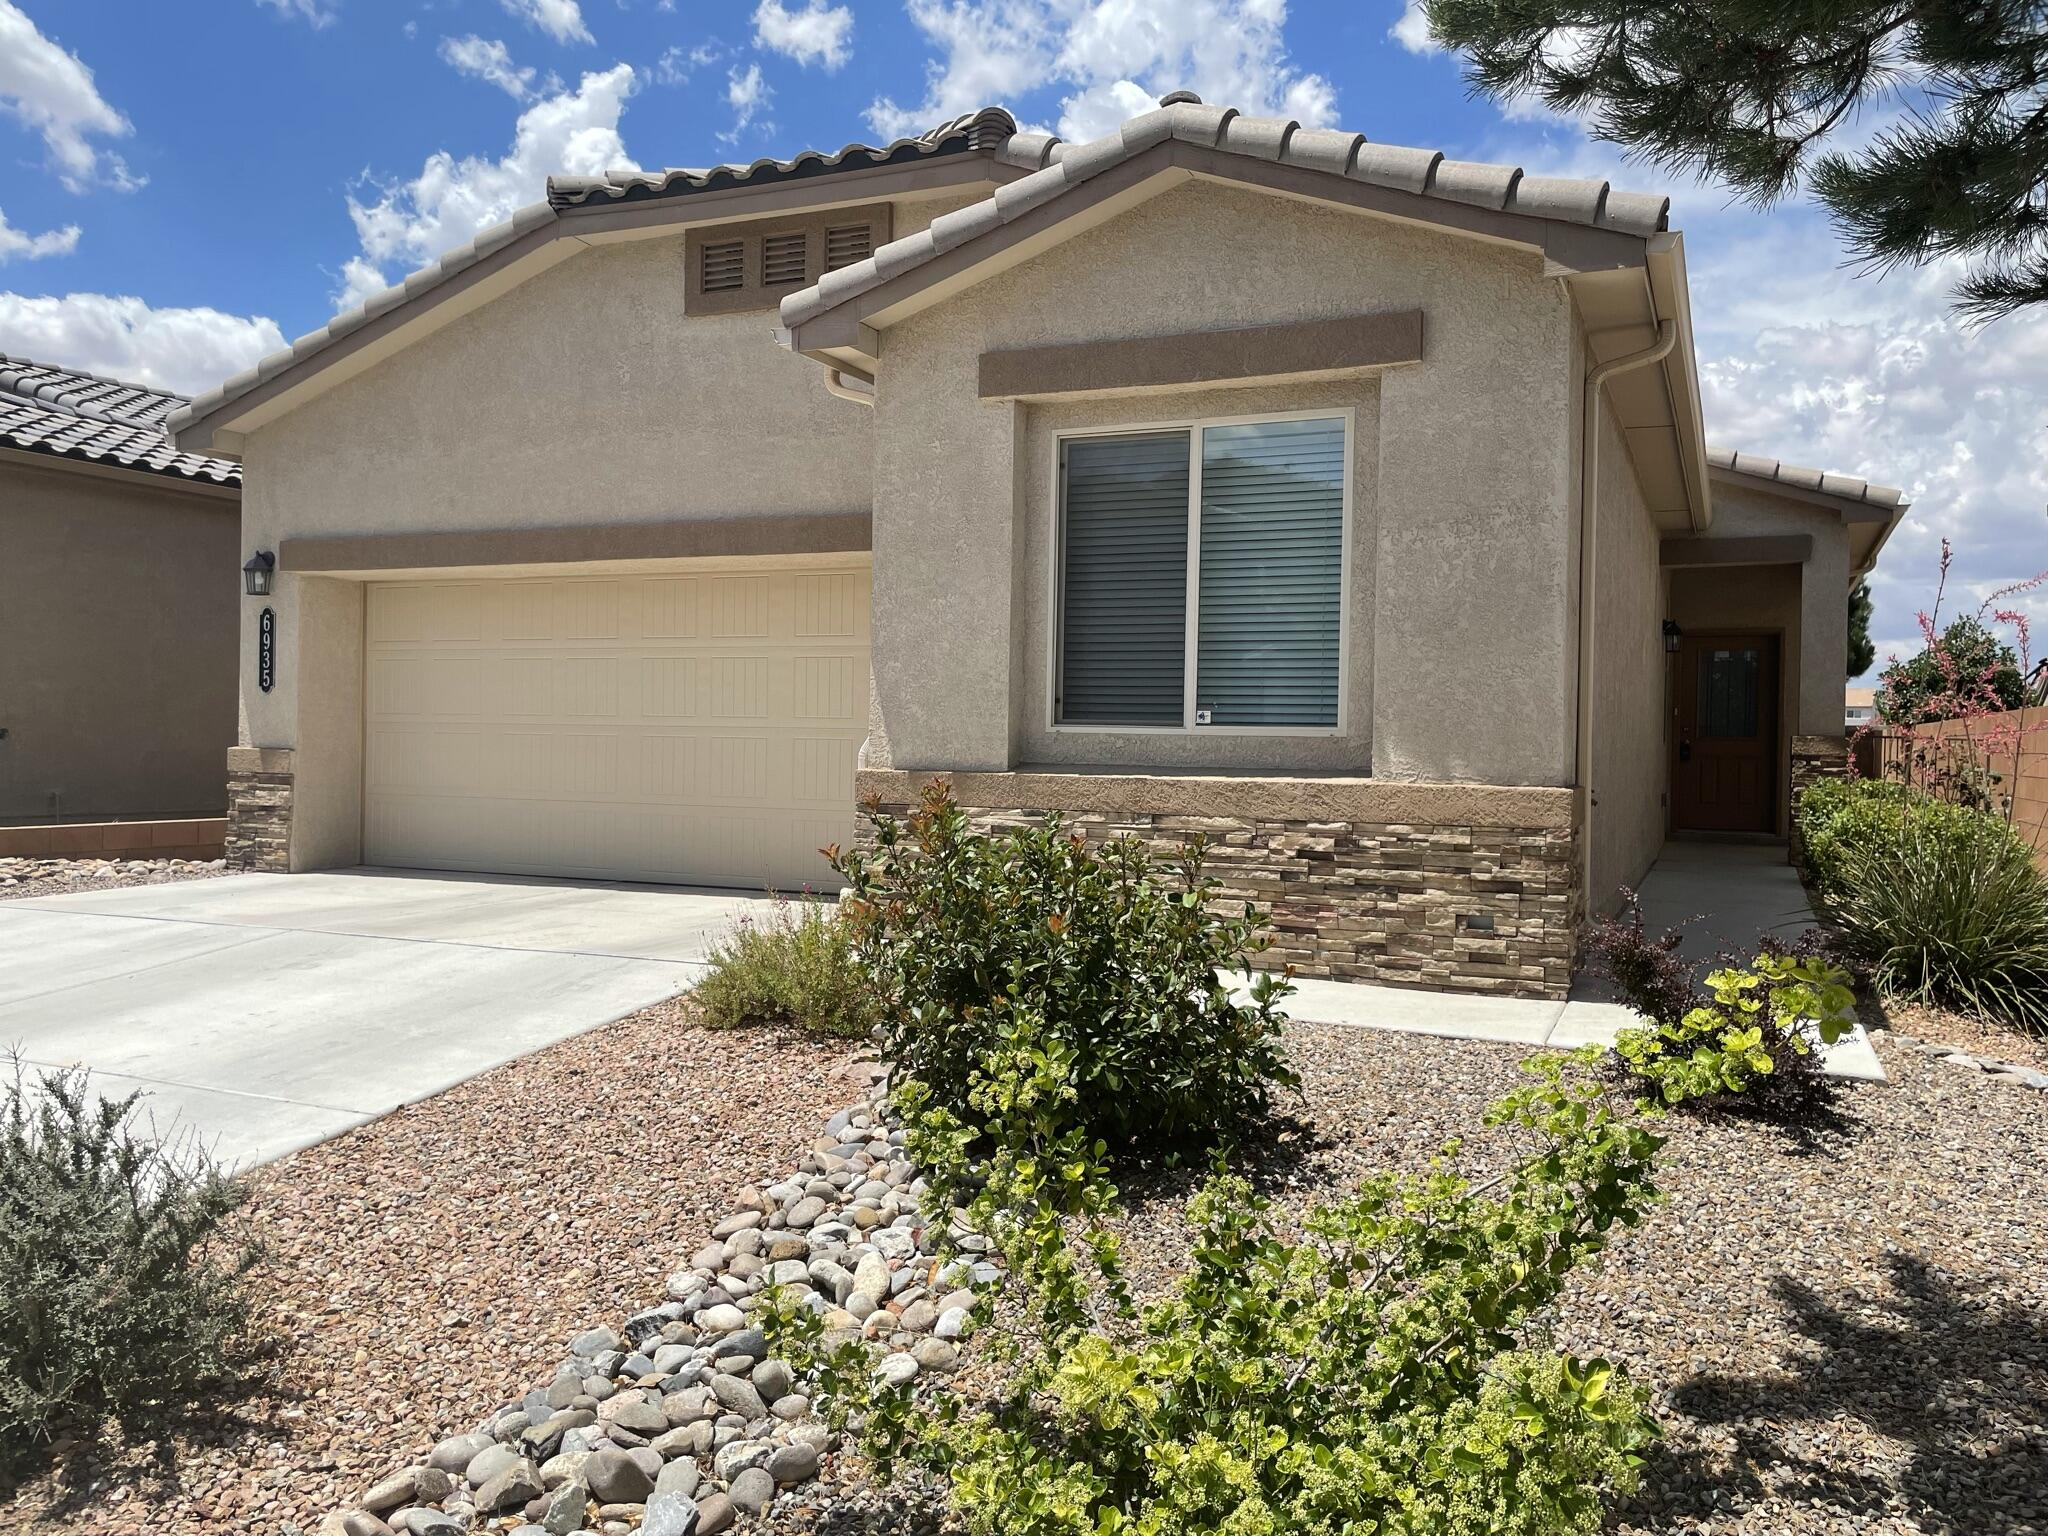 Built in 2016 and Previously DR Hortons Fully Loaded Model Home!  Energy Efficient Green Certified NM Bronze, HERS Score: 70! 2x6  Construction! Stone Accents! Refrigerated Air! Stone Rear Patio! Tall Ceilings! Tankless Hot Water Heater! Granite! Tile & Carpet Flooring! Walk-in Closet! Dual Lavs! Garden Tub! Laundry Room! 3 Bedrooms Plus an Office! Finished Garage!  Beautifully Xeriscaped Front and Back! Walking Trails / Parks Nearby! All Appliances Stay! This Home is Beautiful and Move in Ready!